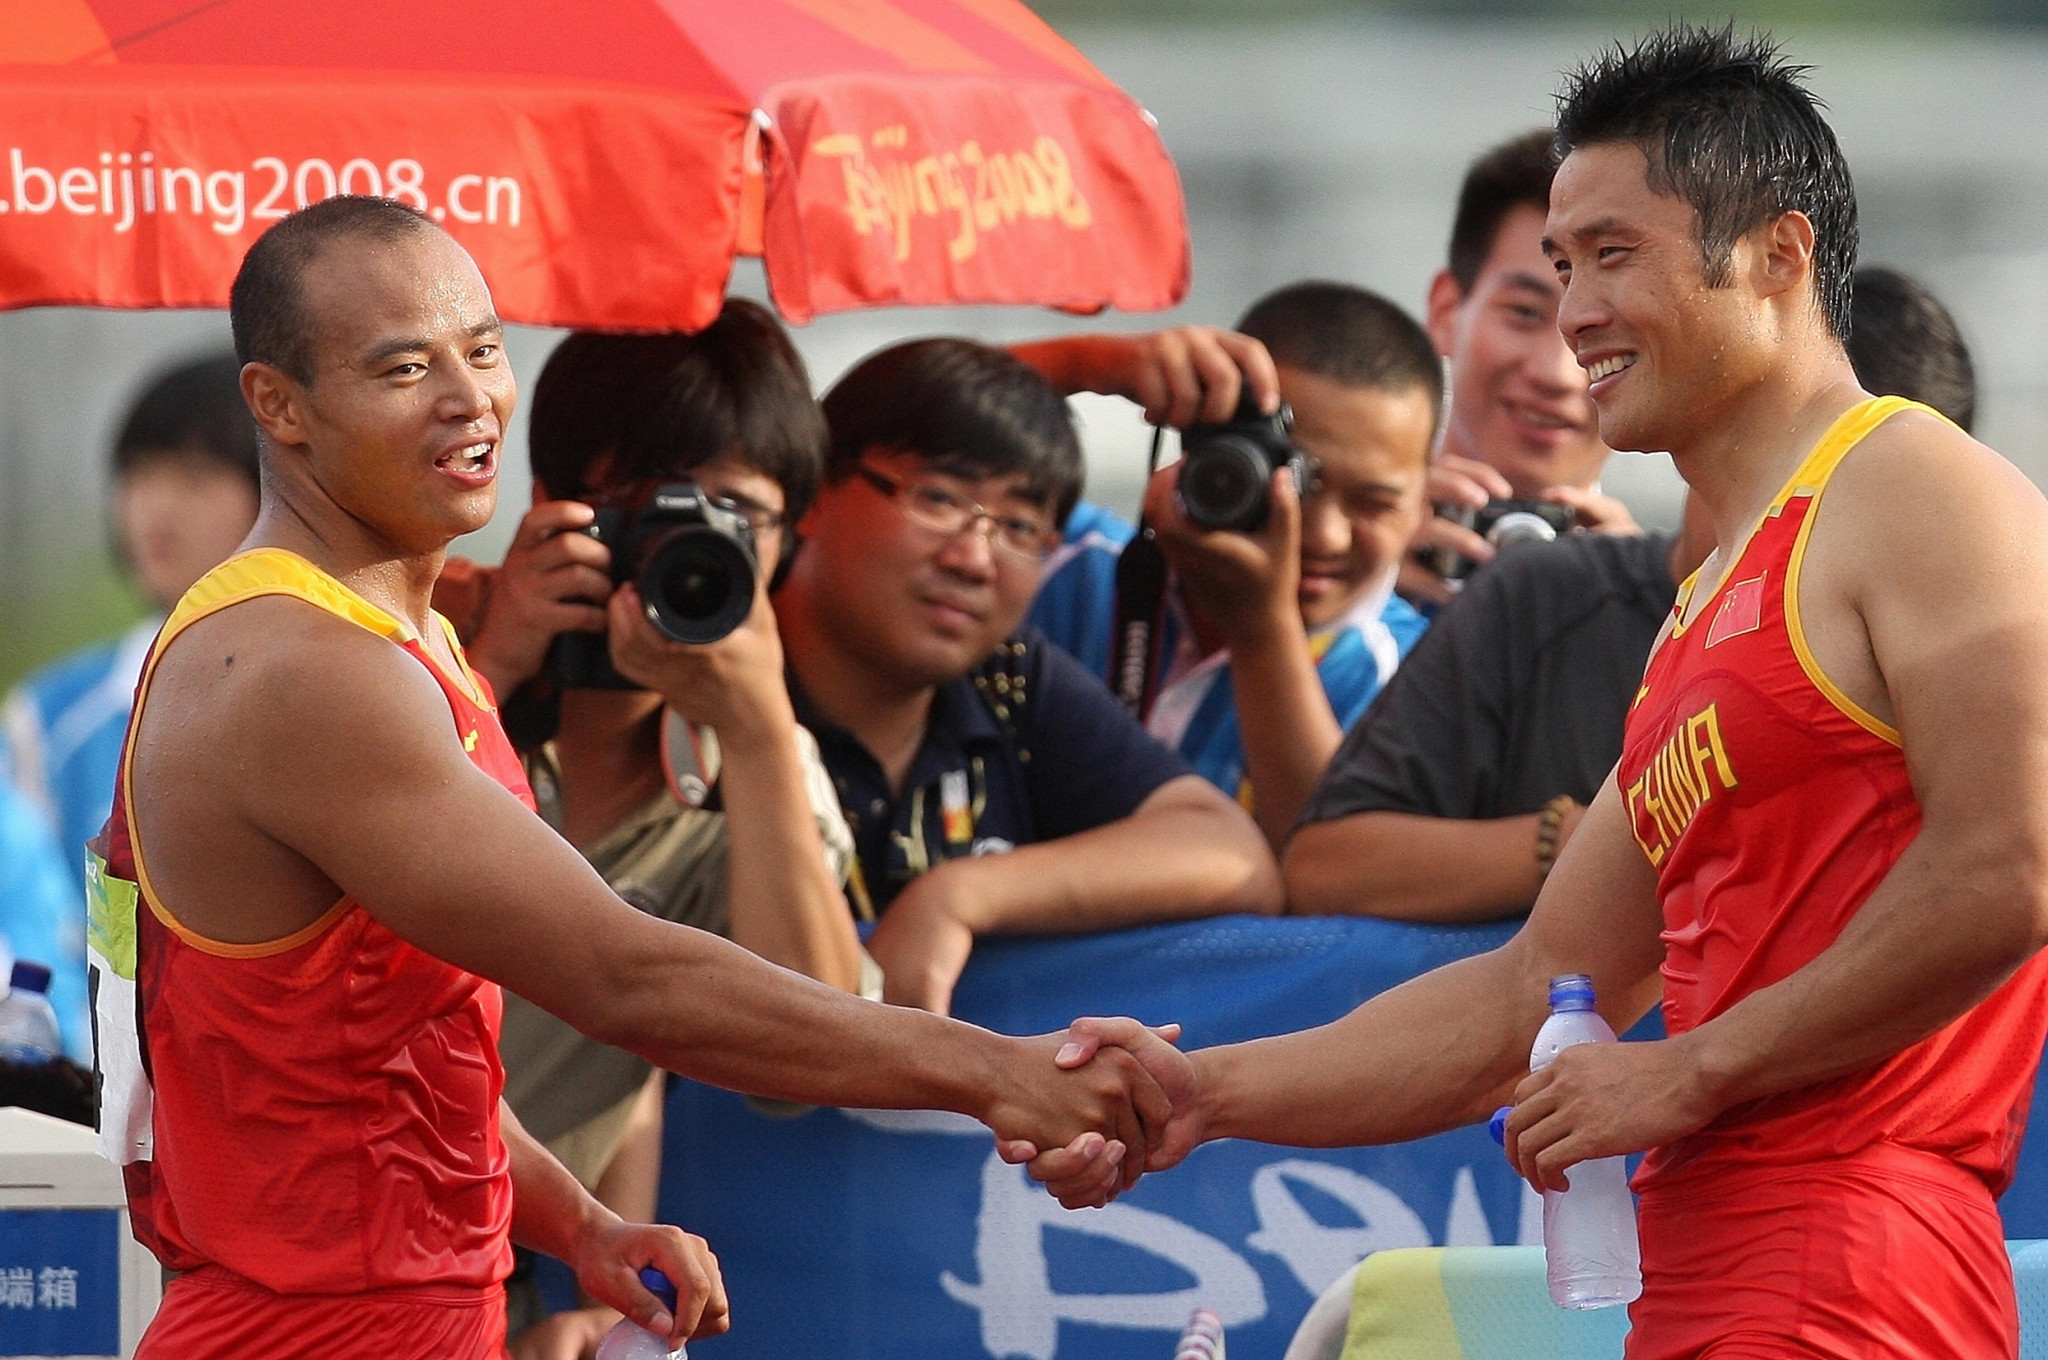 Yang Wenjun and Meng Guanliang are China's most decorated canoeists ©Getty Images